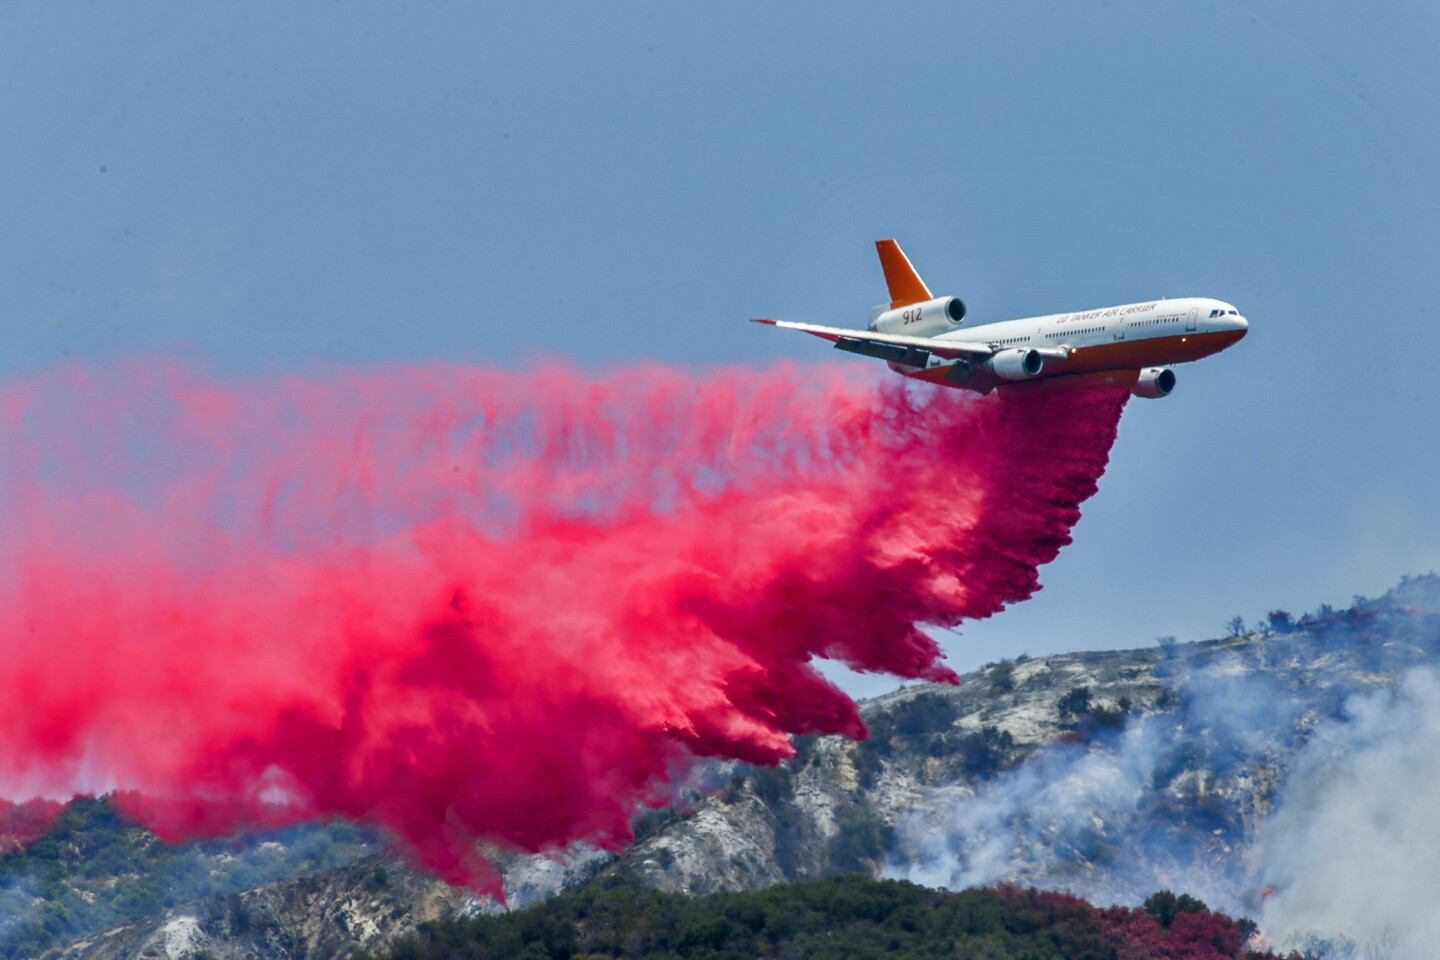 A DC-10 air tanker drops Phos-Chek, a fire retardant, on the Fish fire in Duarte on June 22.